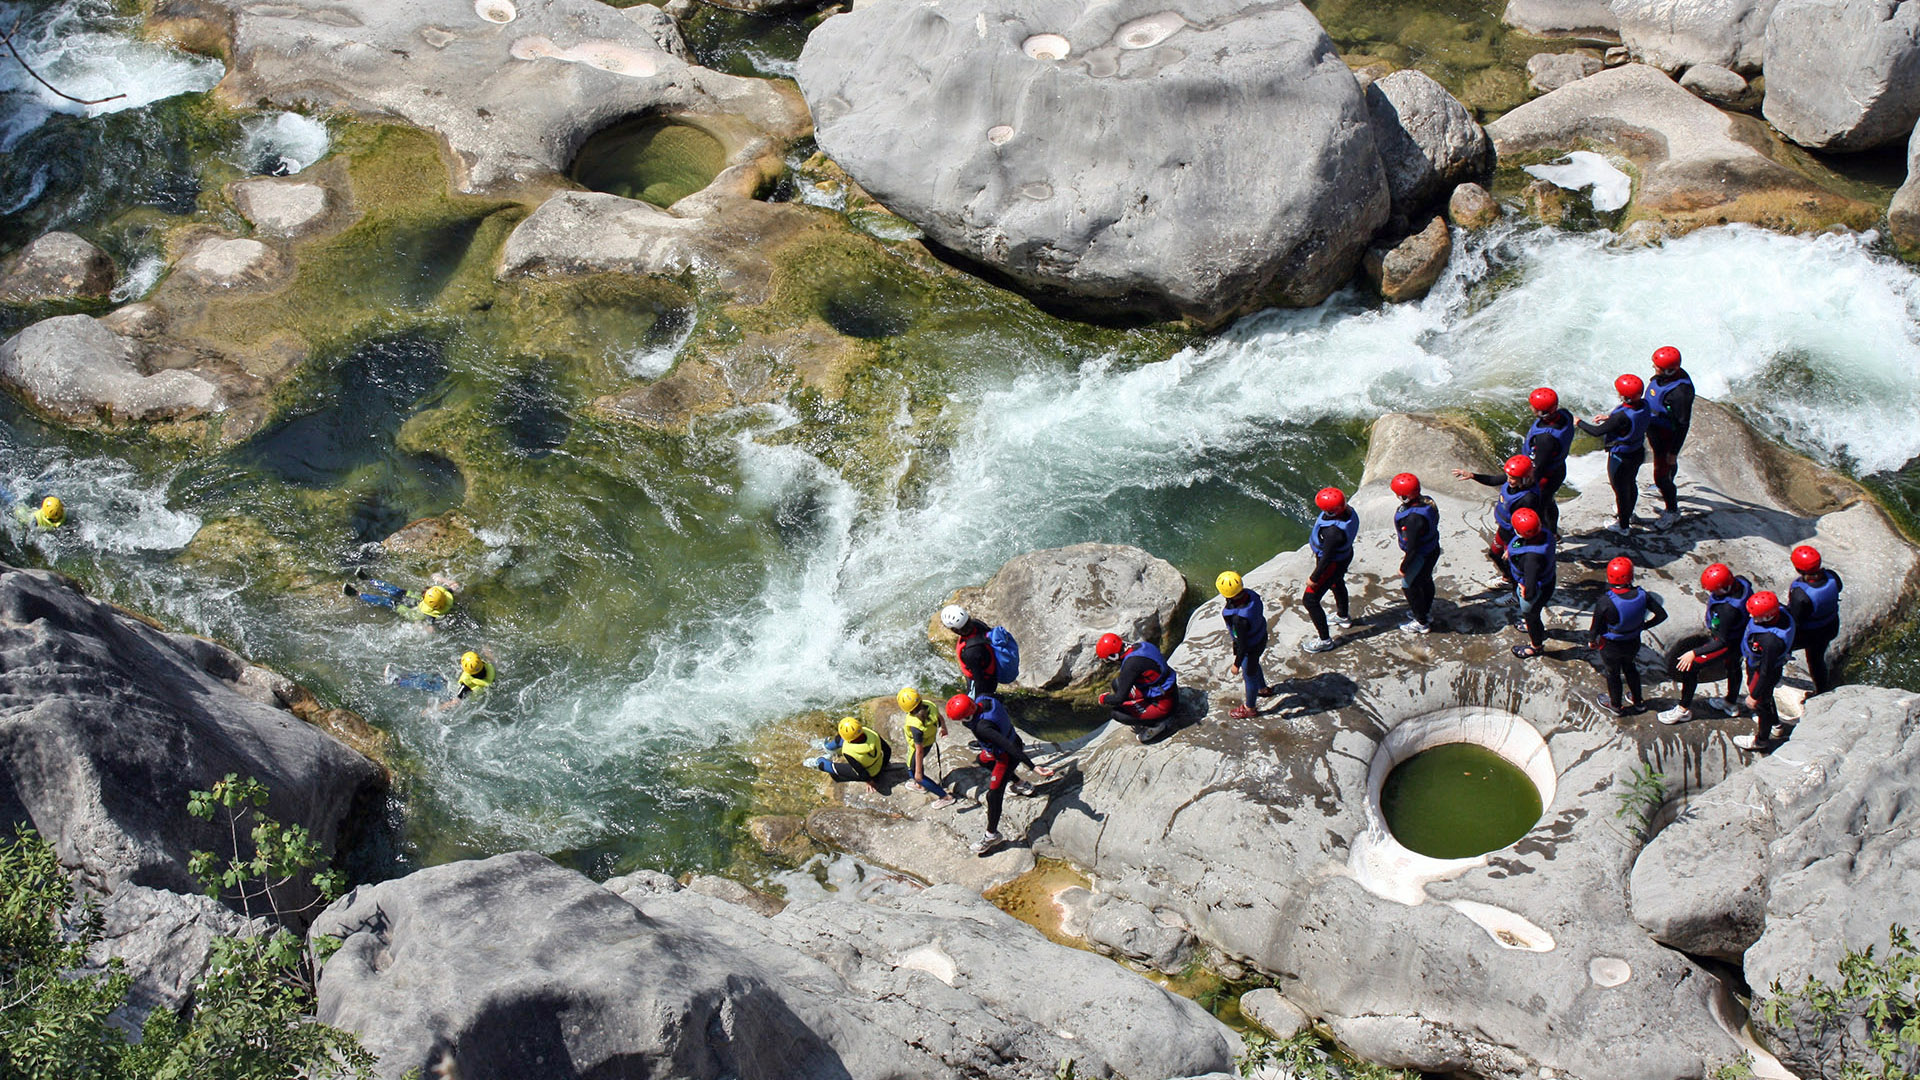 river canyoning adrenaline adventure 10